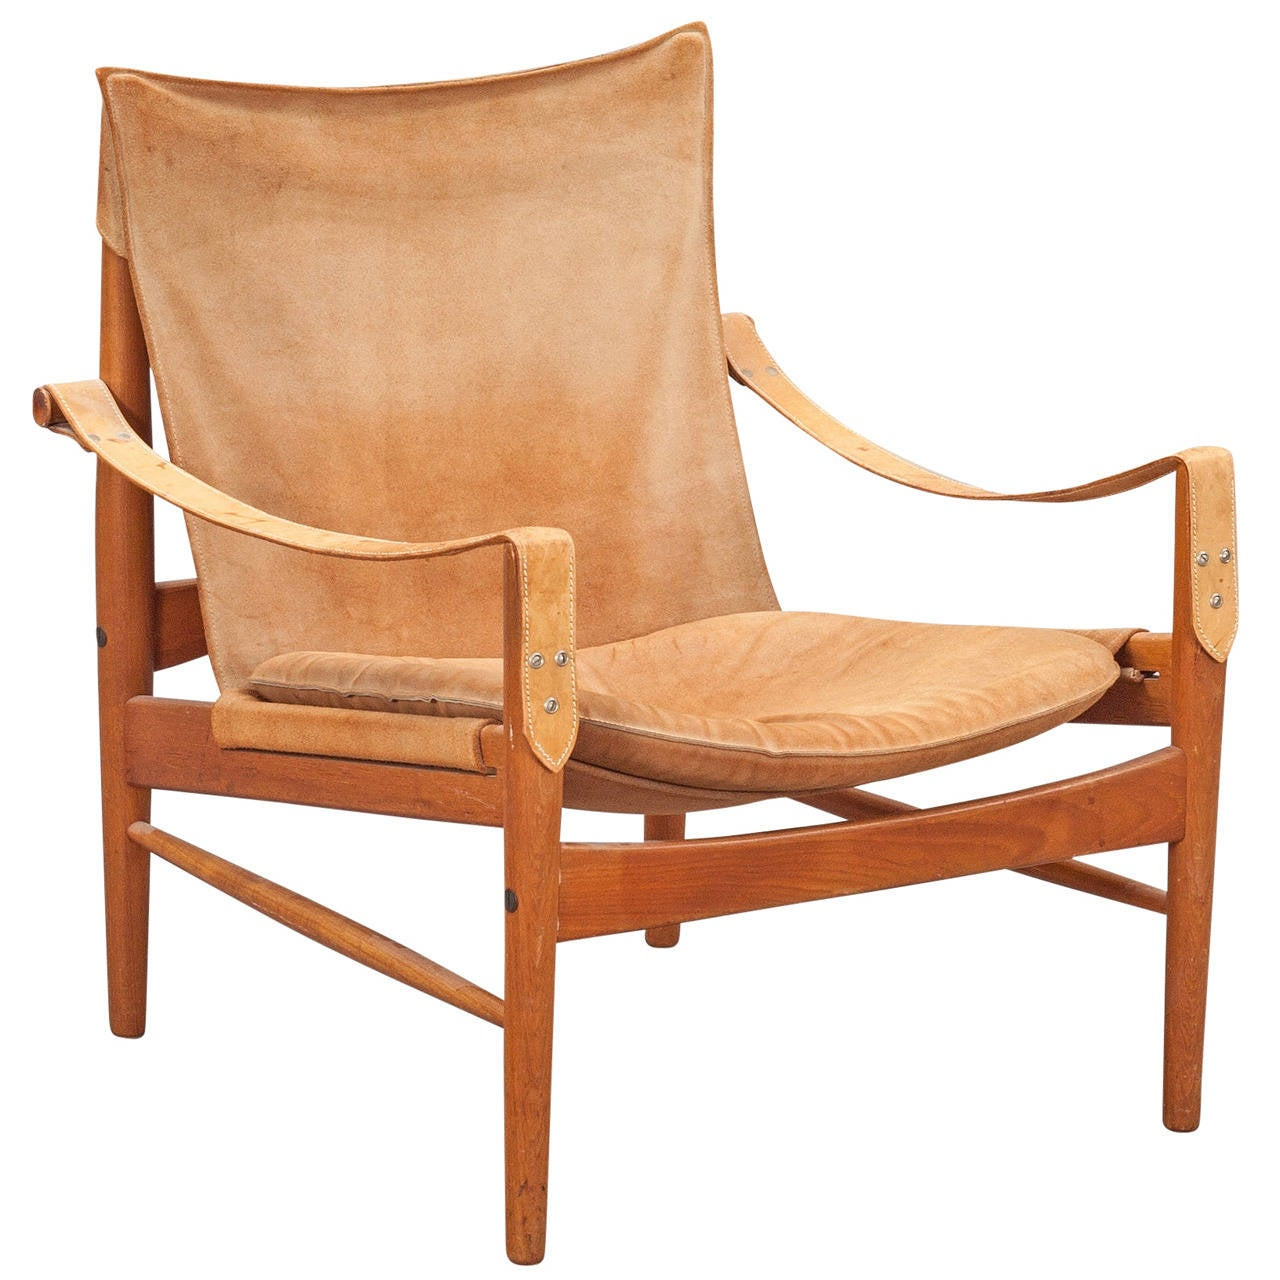 Safari Chair Hans Olsen 1960s Suede And Leather Safari Chair At 1stdibs